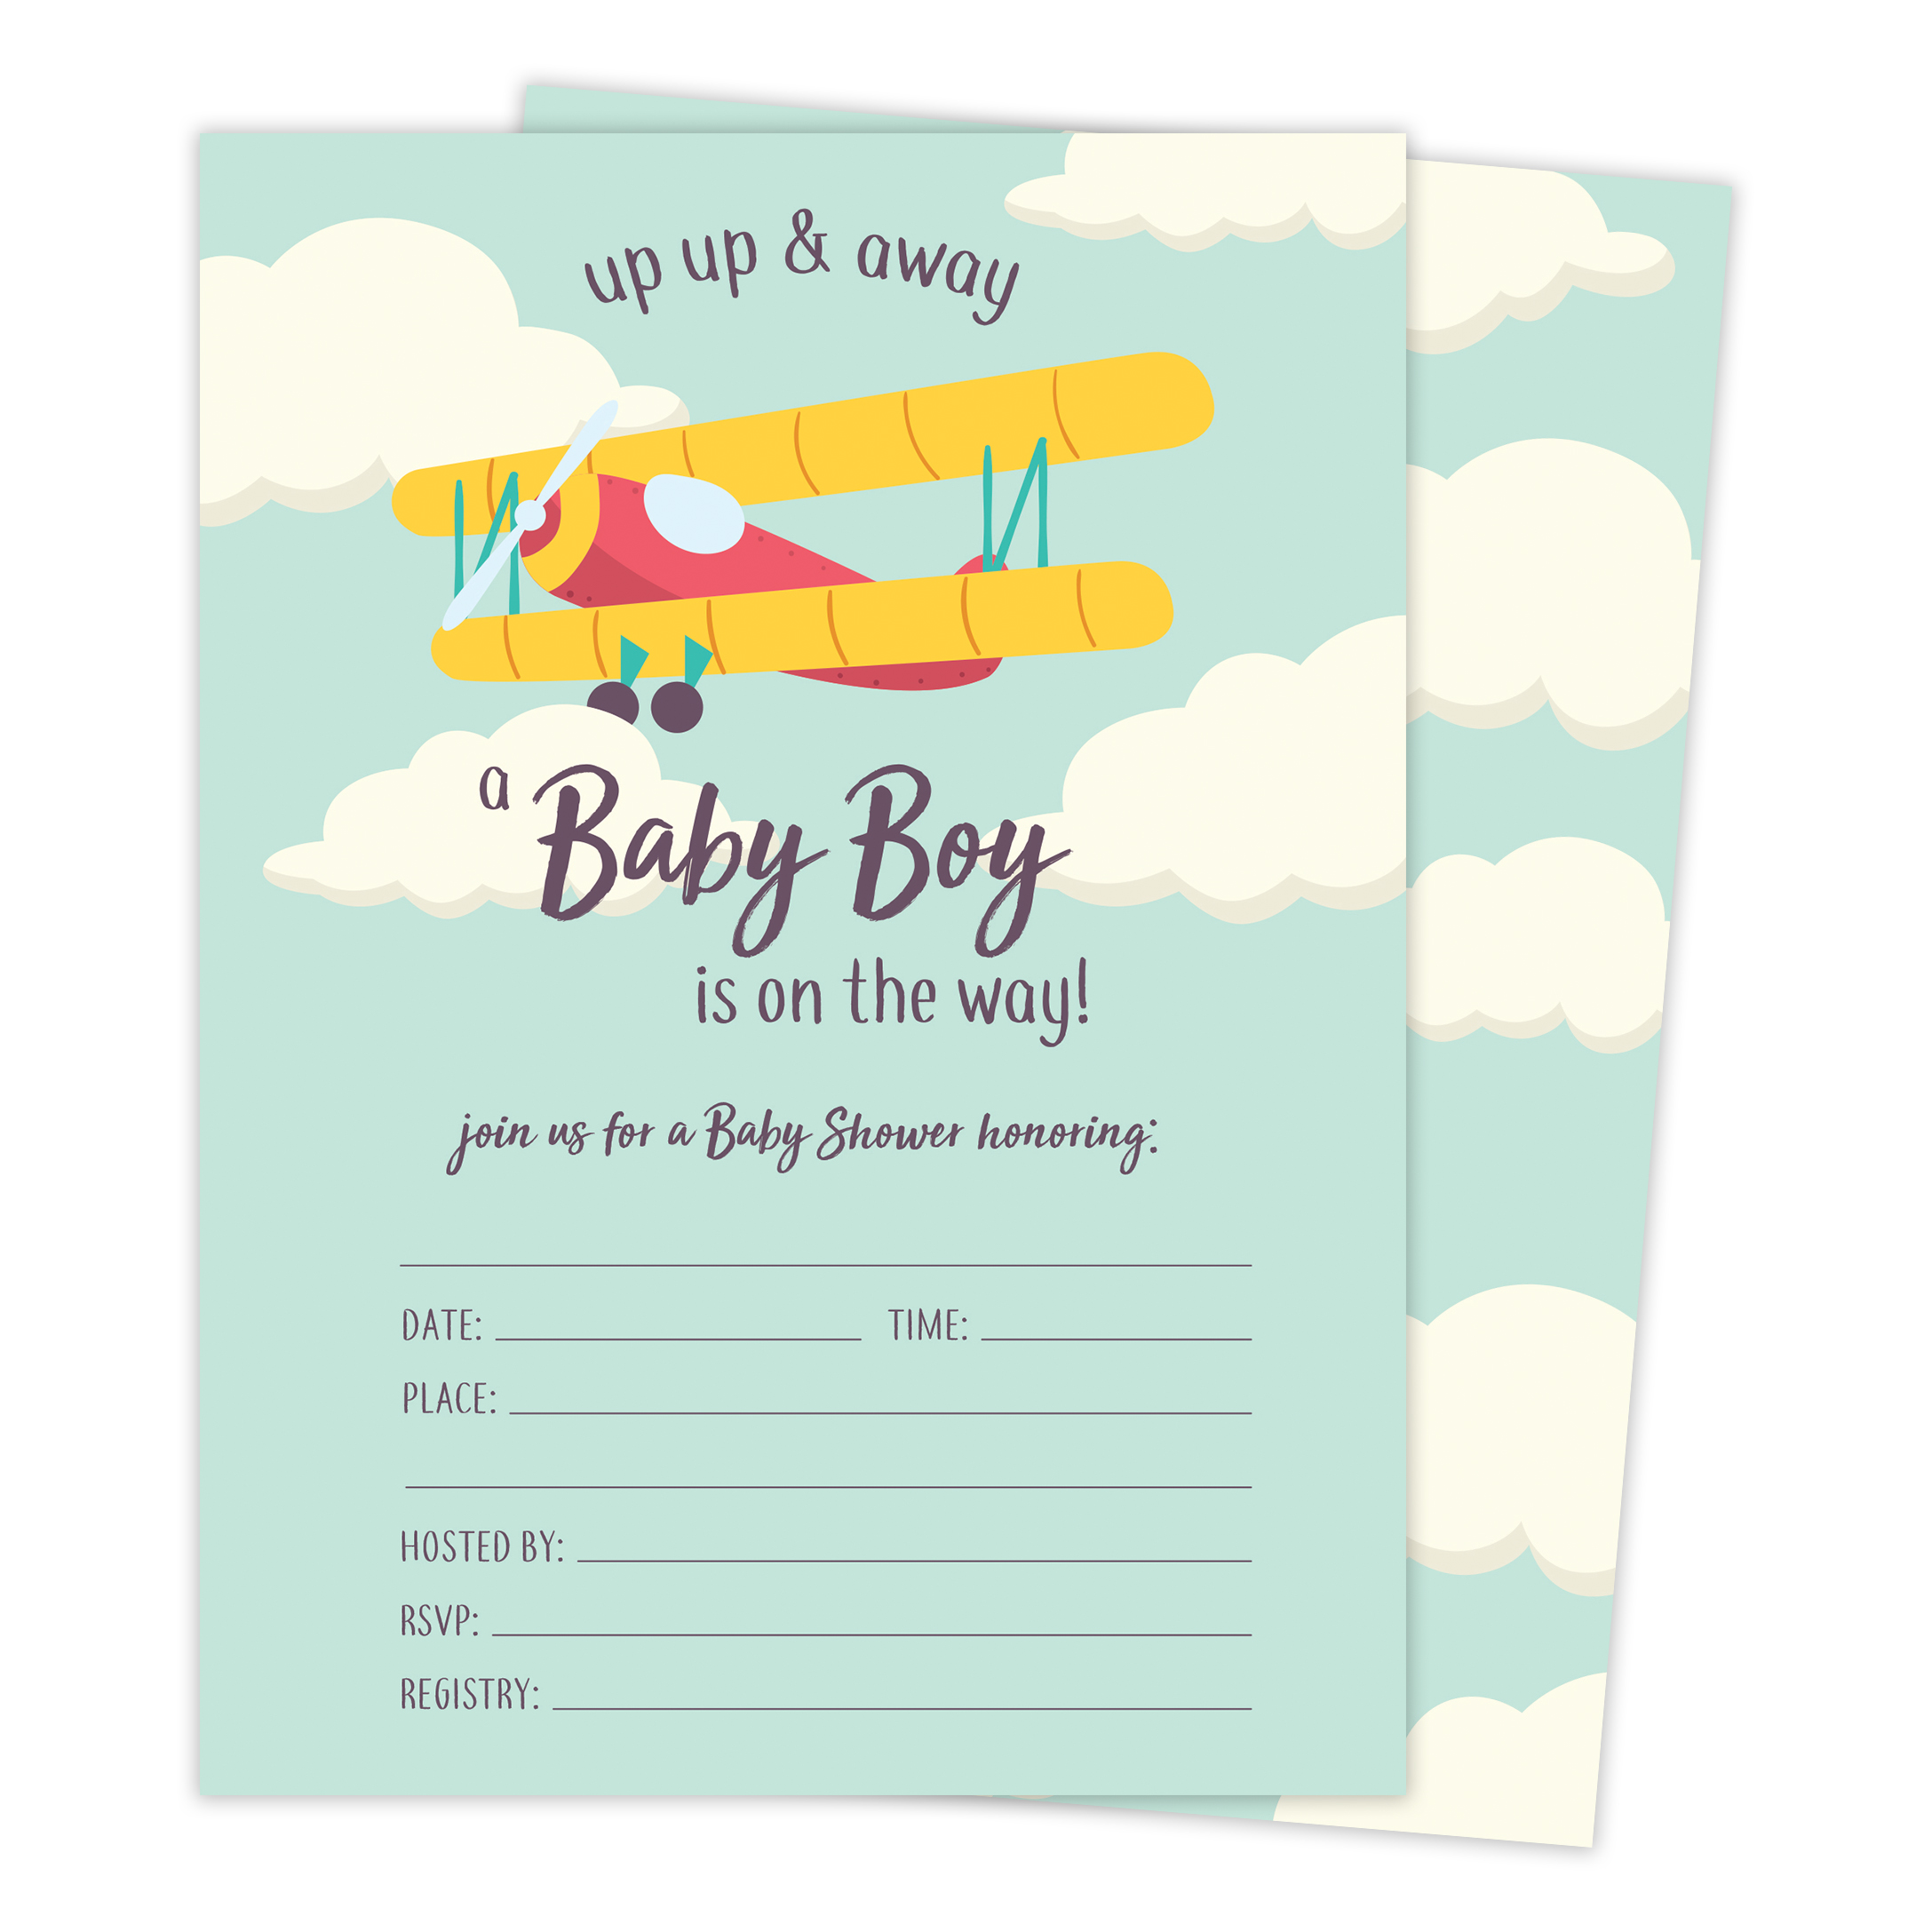 Airplane 1 Baby Shower Invitations Invite Cards (25 Count) With Envelopes & Seal Stickers Vinyl Boy